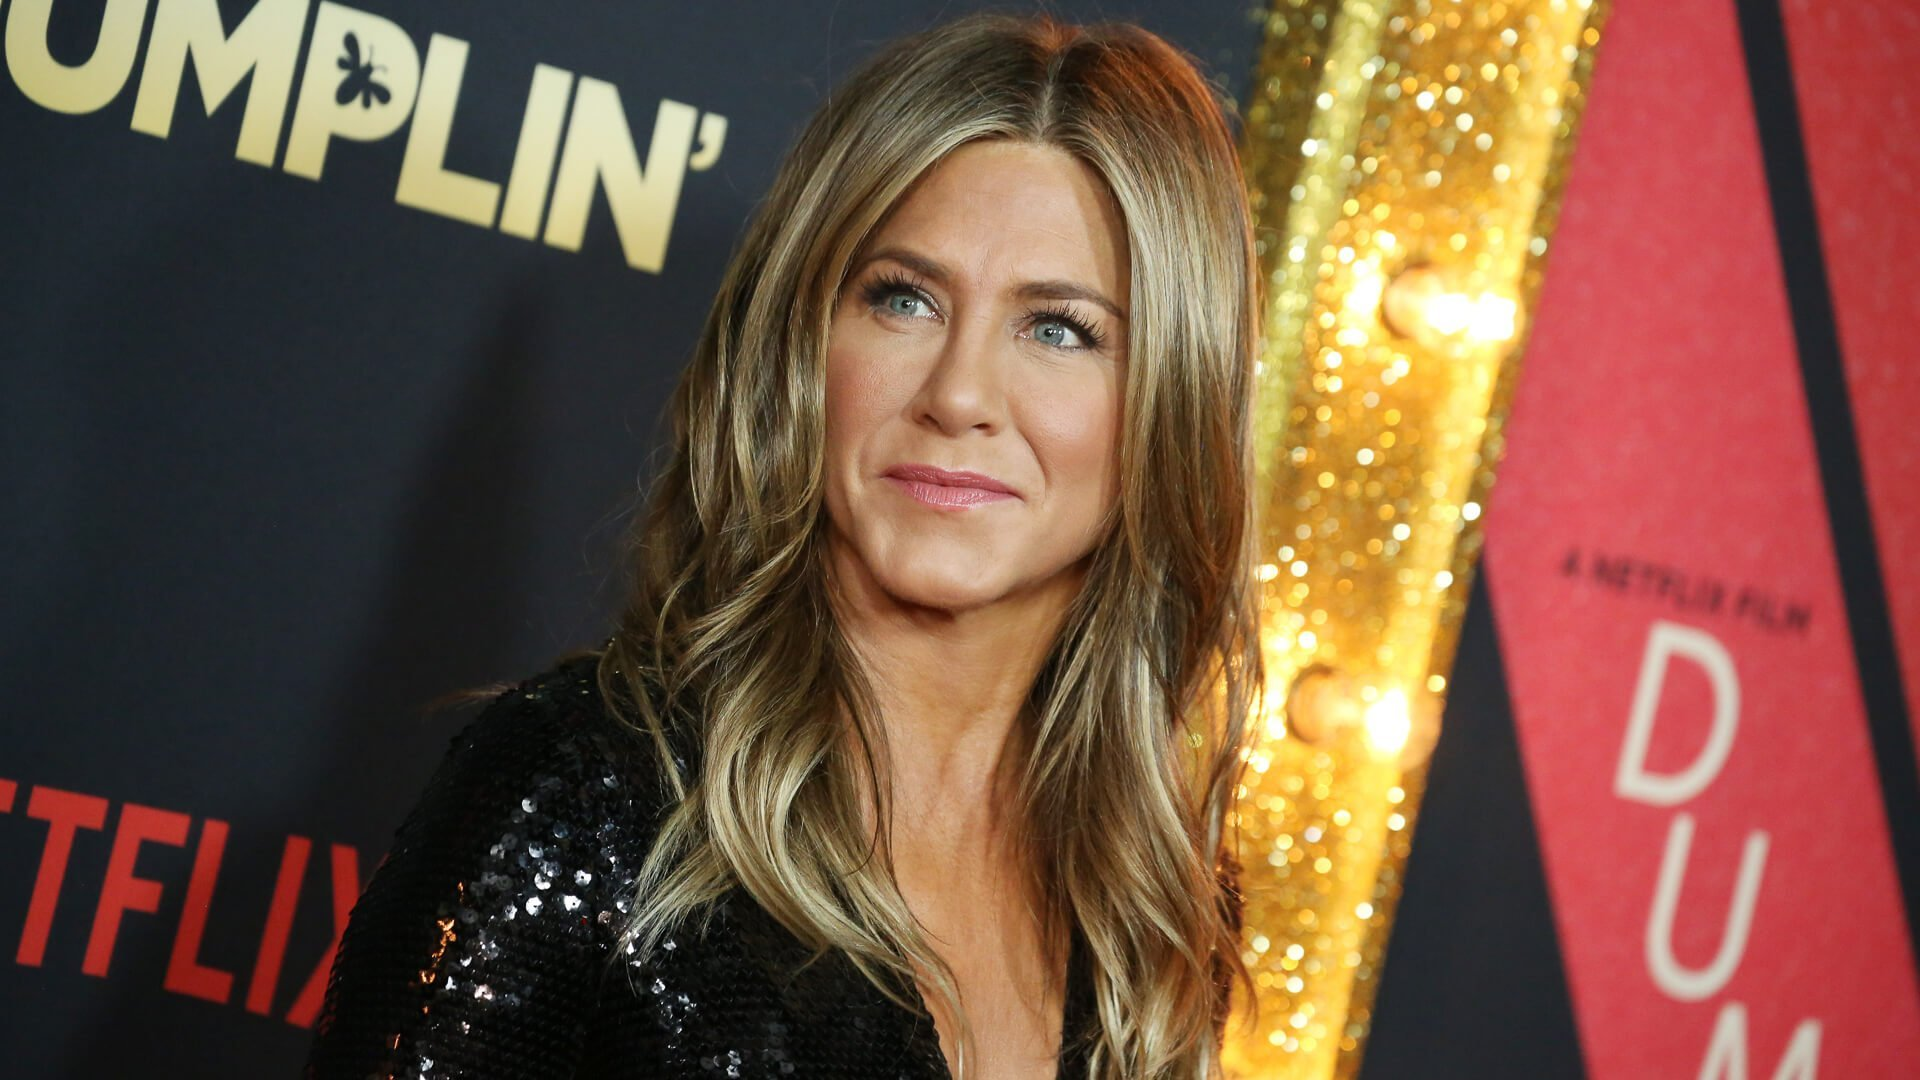 How rich are Jennifer Aniston, Tom Hanks and your favorite stars?